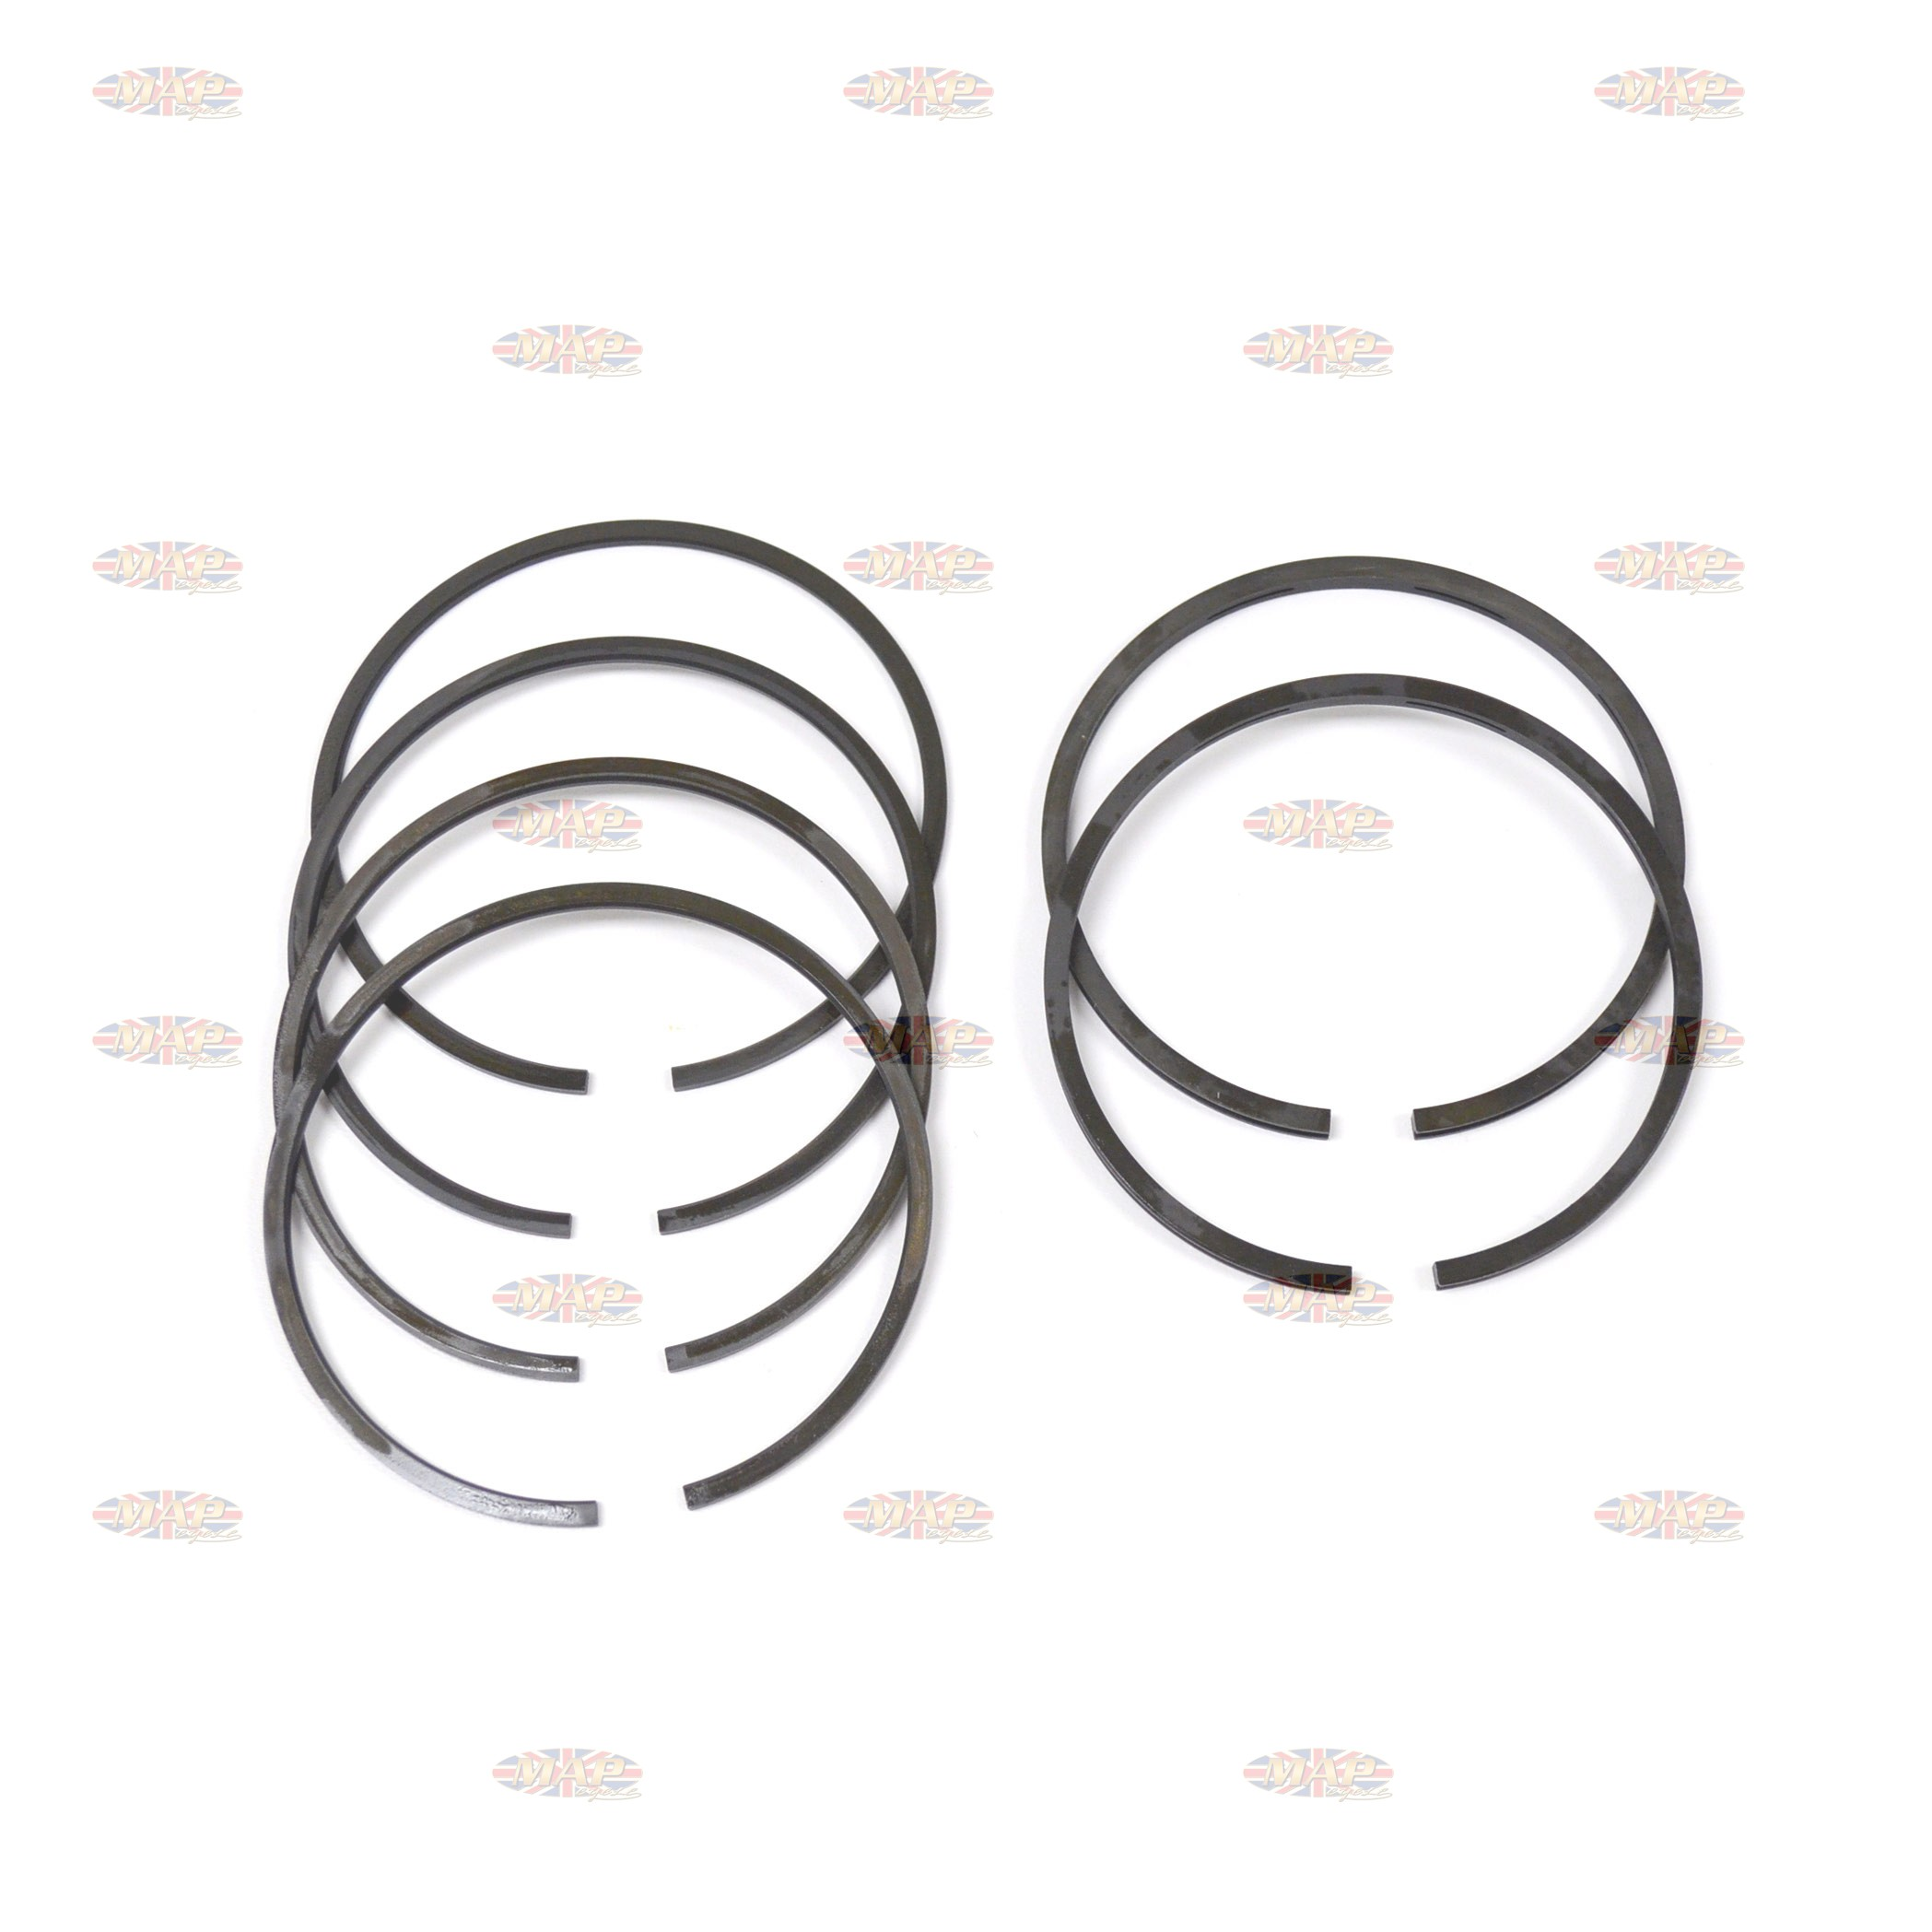 Budget Piston Ring Set for BSA A65 +.020 R17350/T020